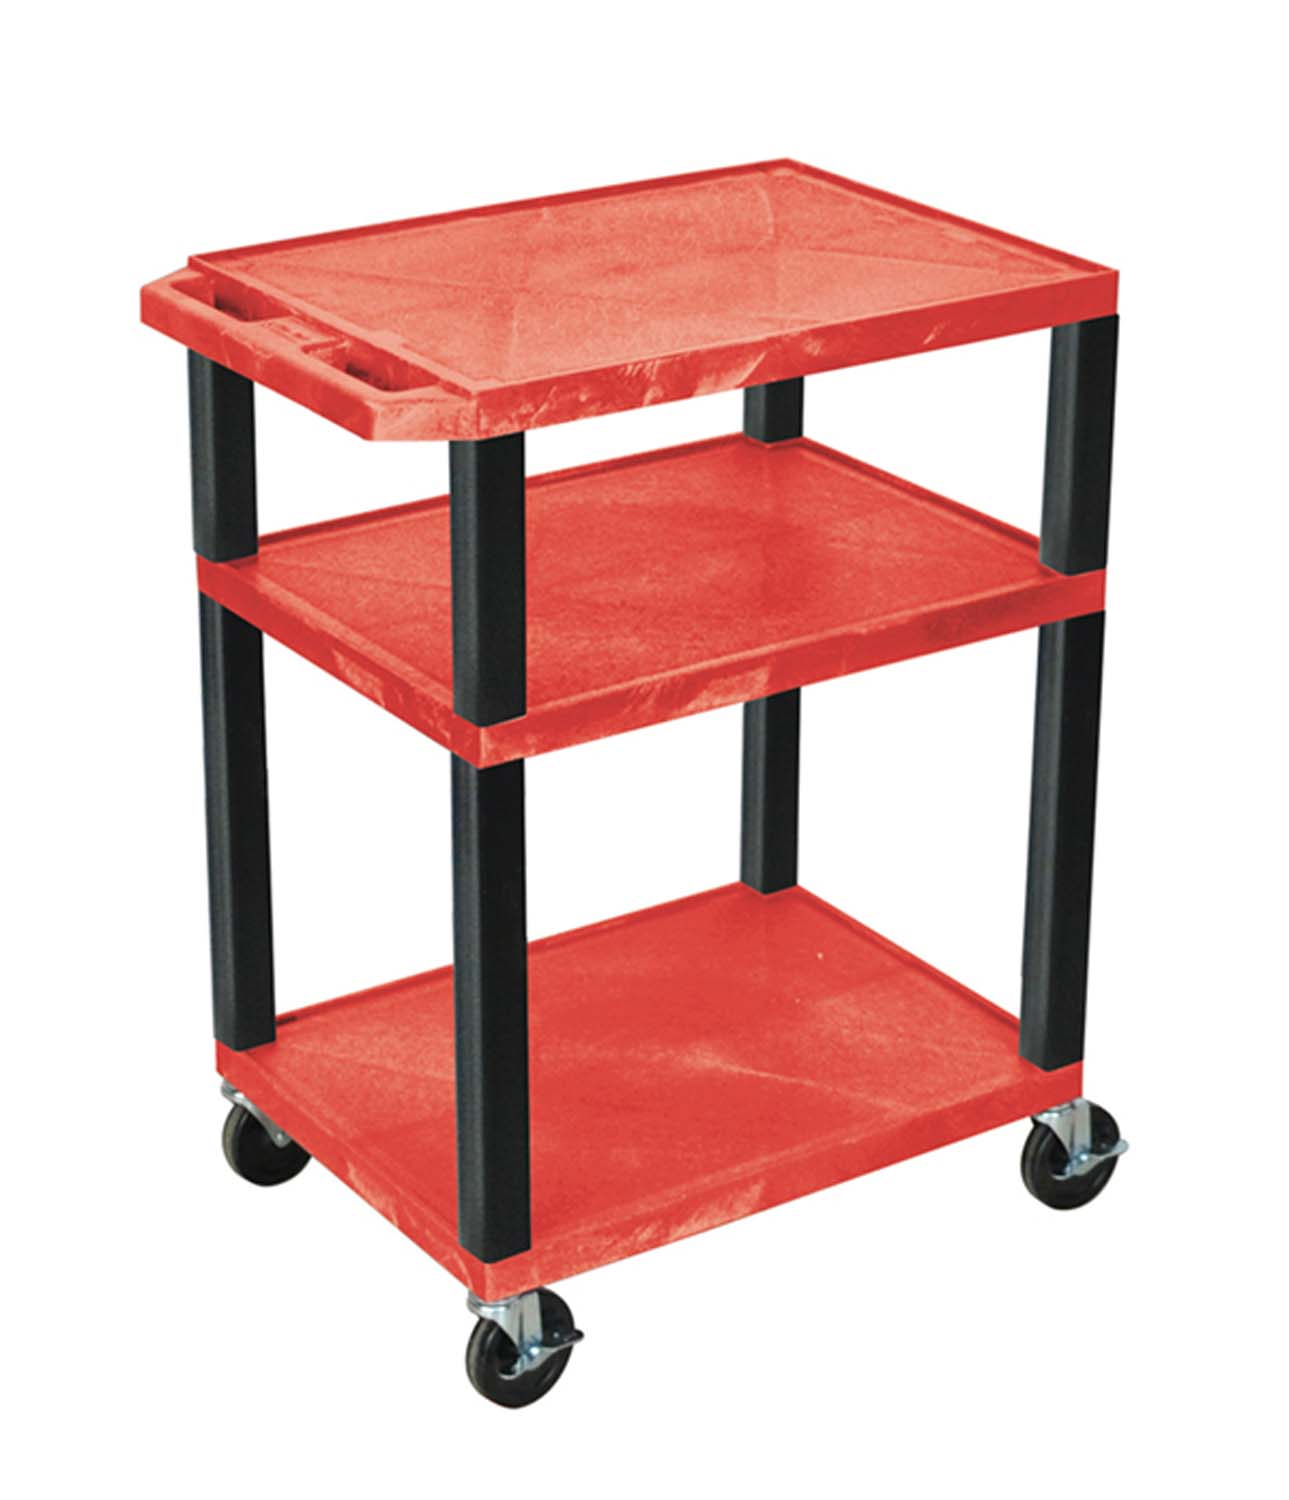 Offex Red Multipurpose Tuffy Cart 34 with Black Legs